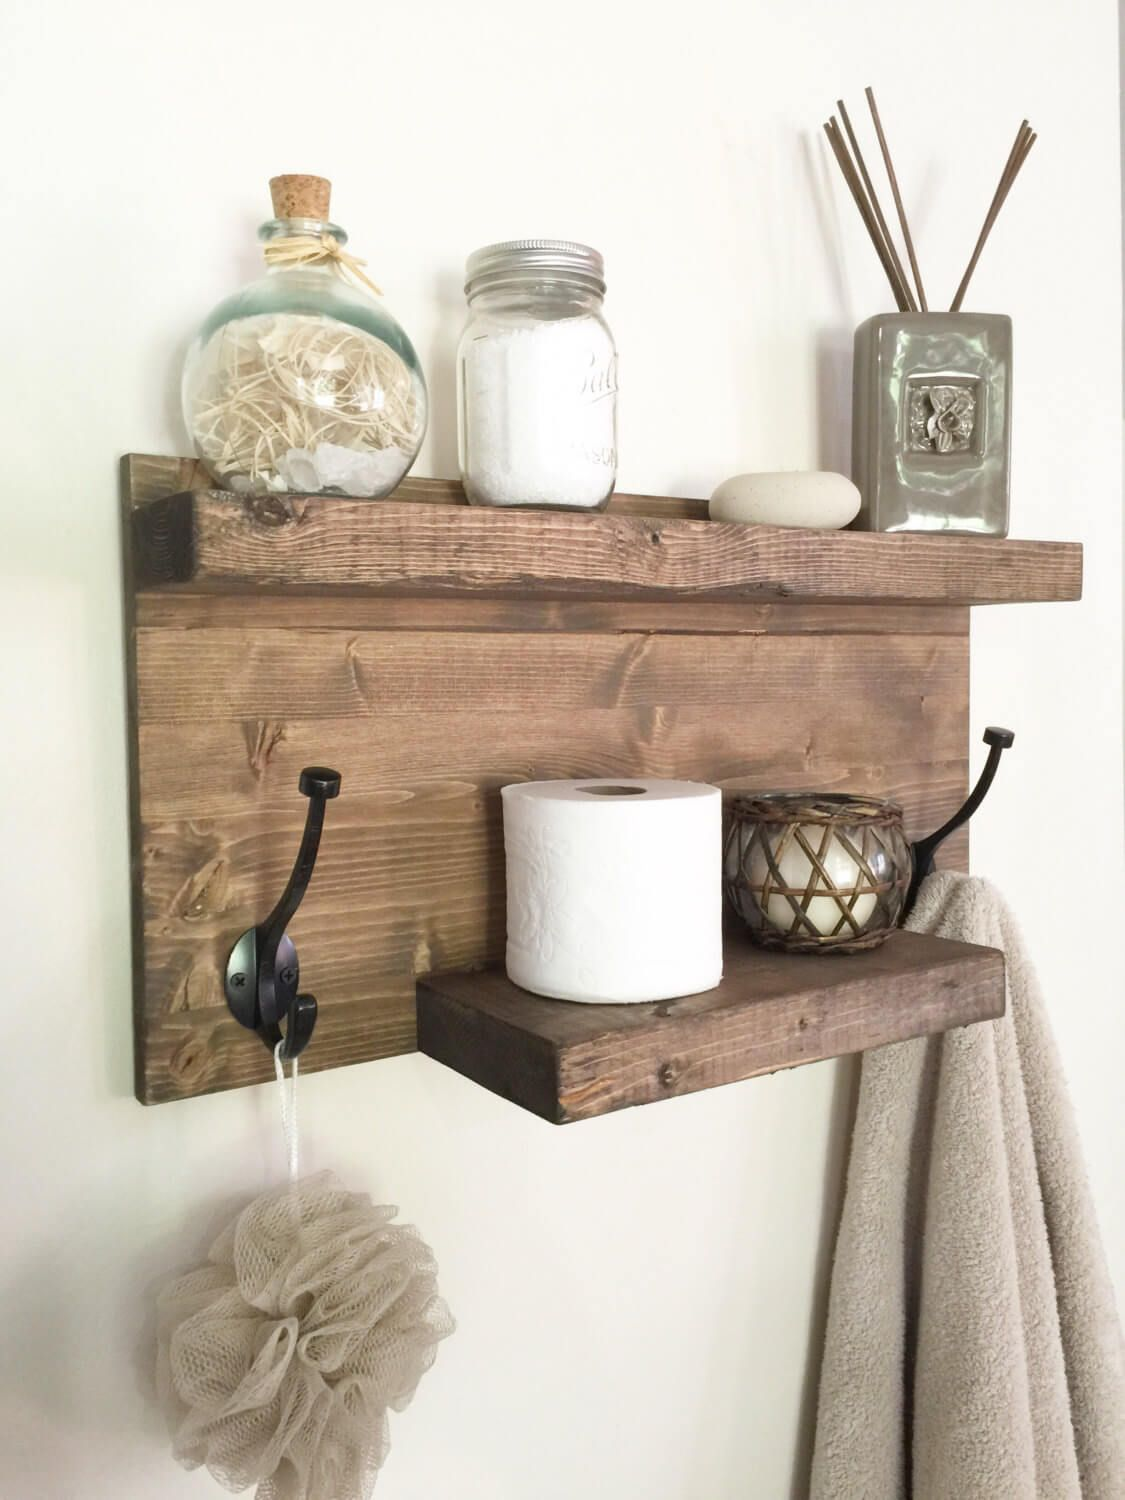 DIY Wood Towel Rack and Organizer add a couple of hooks